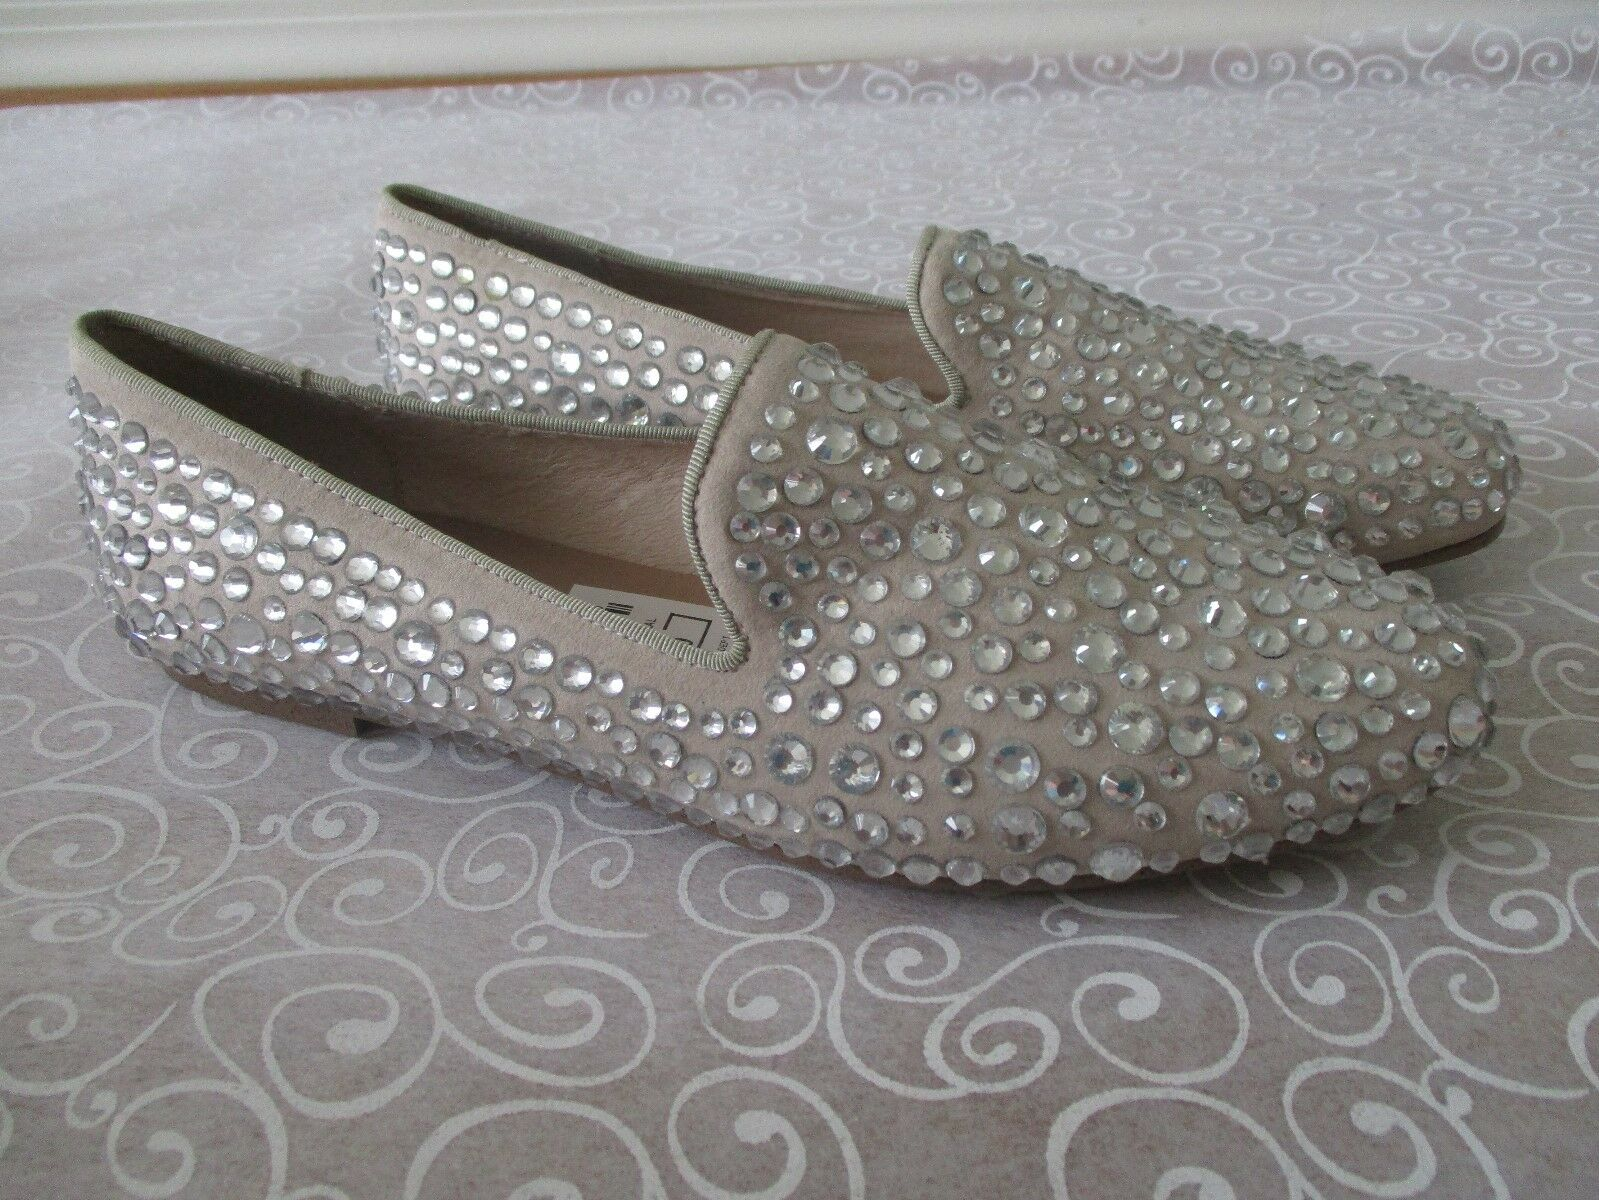 139 STEVEN BY STEVEN MADEN TAN TAN TAN CLEAR RHINESTONE LOAFERS SHOES SIZE 10 M - NEW 3c0028